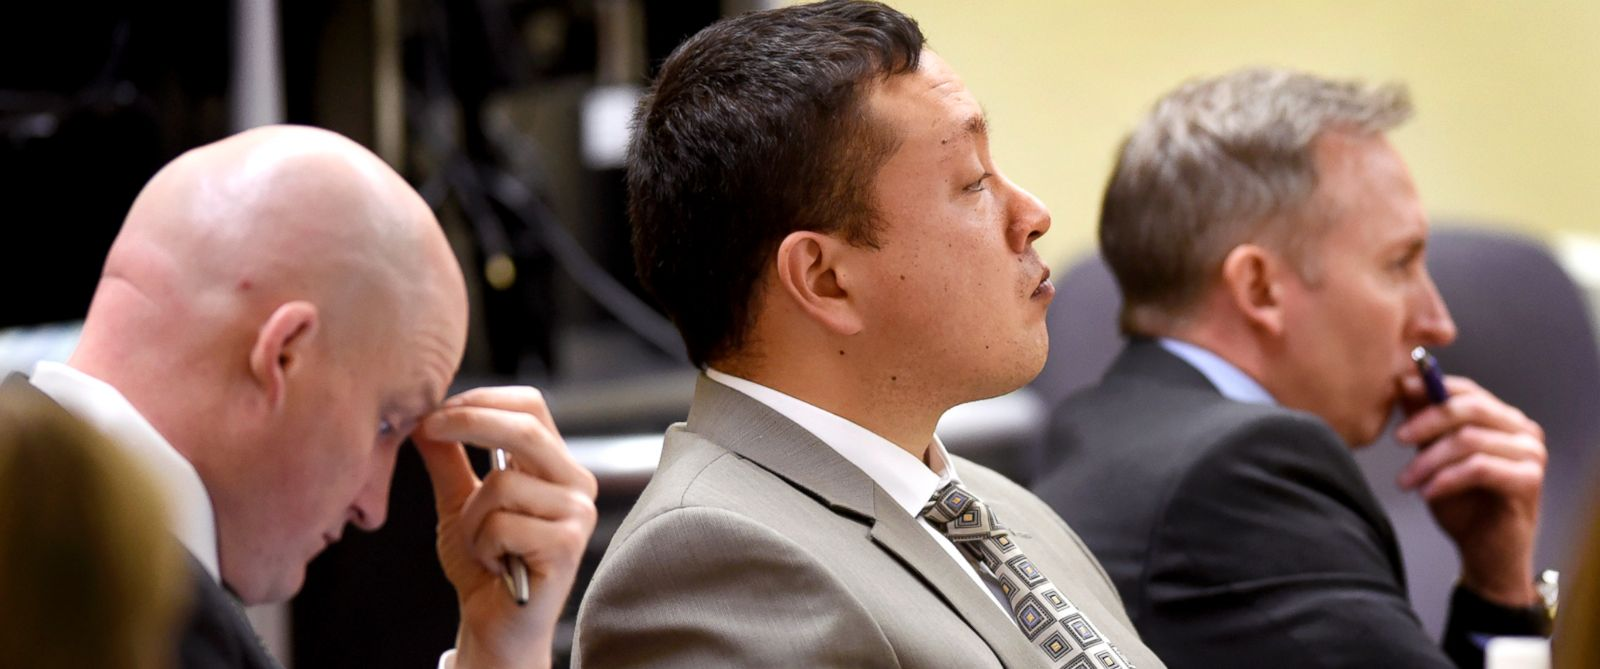 Markus Kaarma, center, is flanked by his defense attorneys, Brian Smith, left, and Paul Ryan, as he listens to testimony during his trial in Missoula, Mont., in the shooting death of Diren Dede, in this Dec. 8, 2014, file photo.